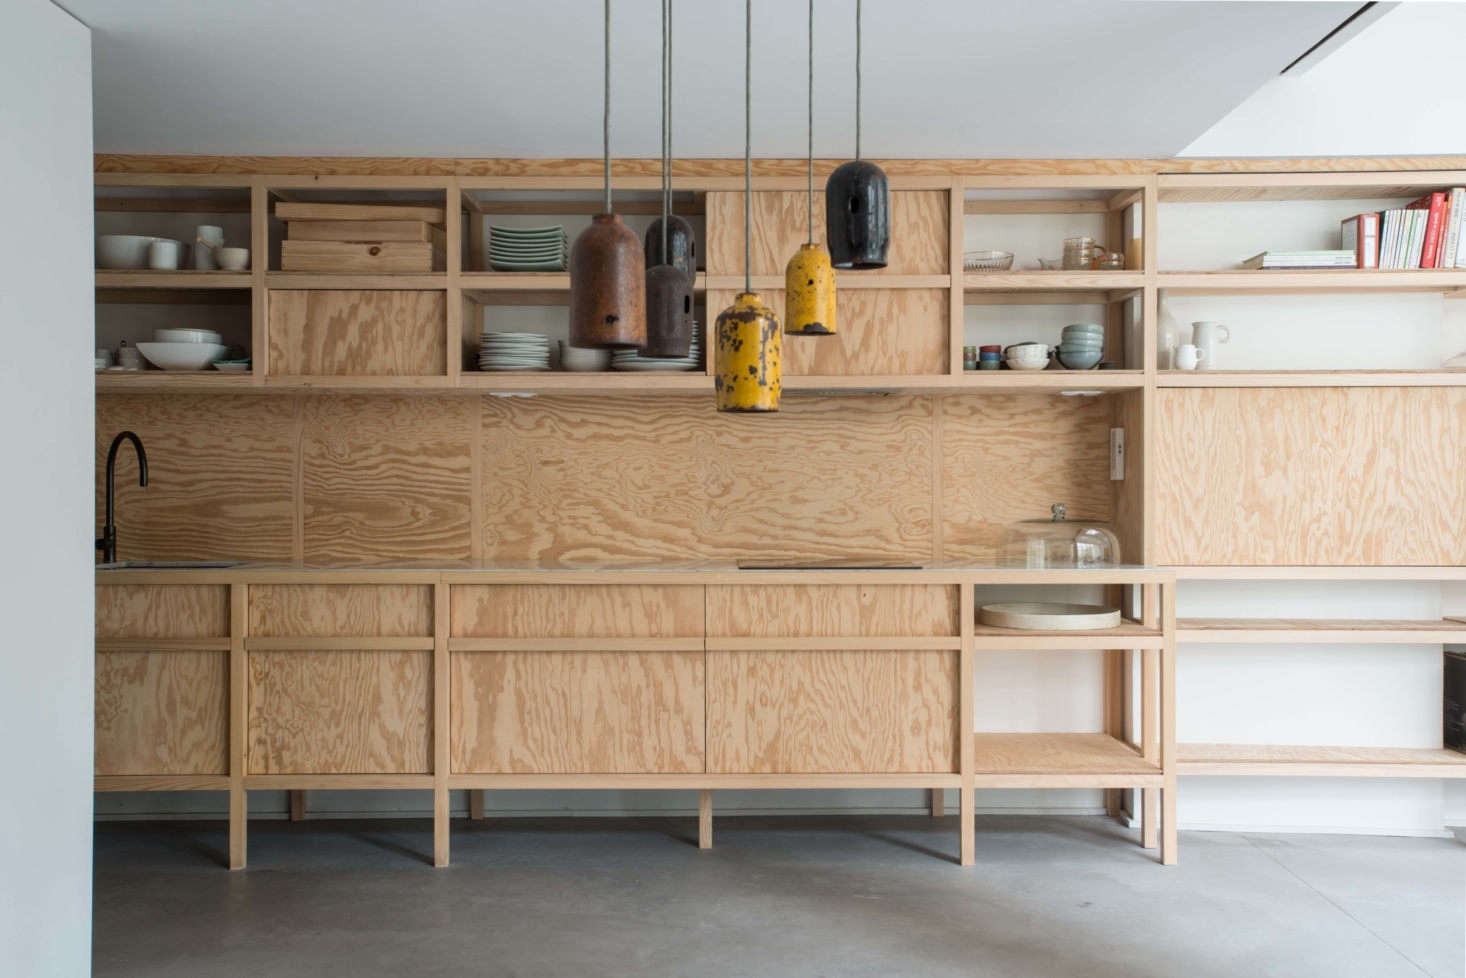 At the far end of the space the shelving morphs into an all-wood kitchen.